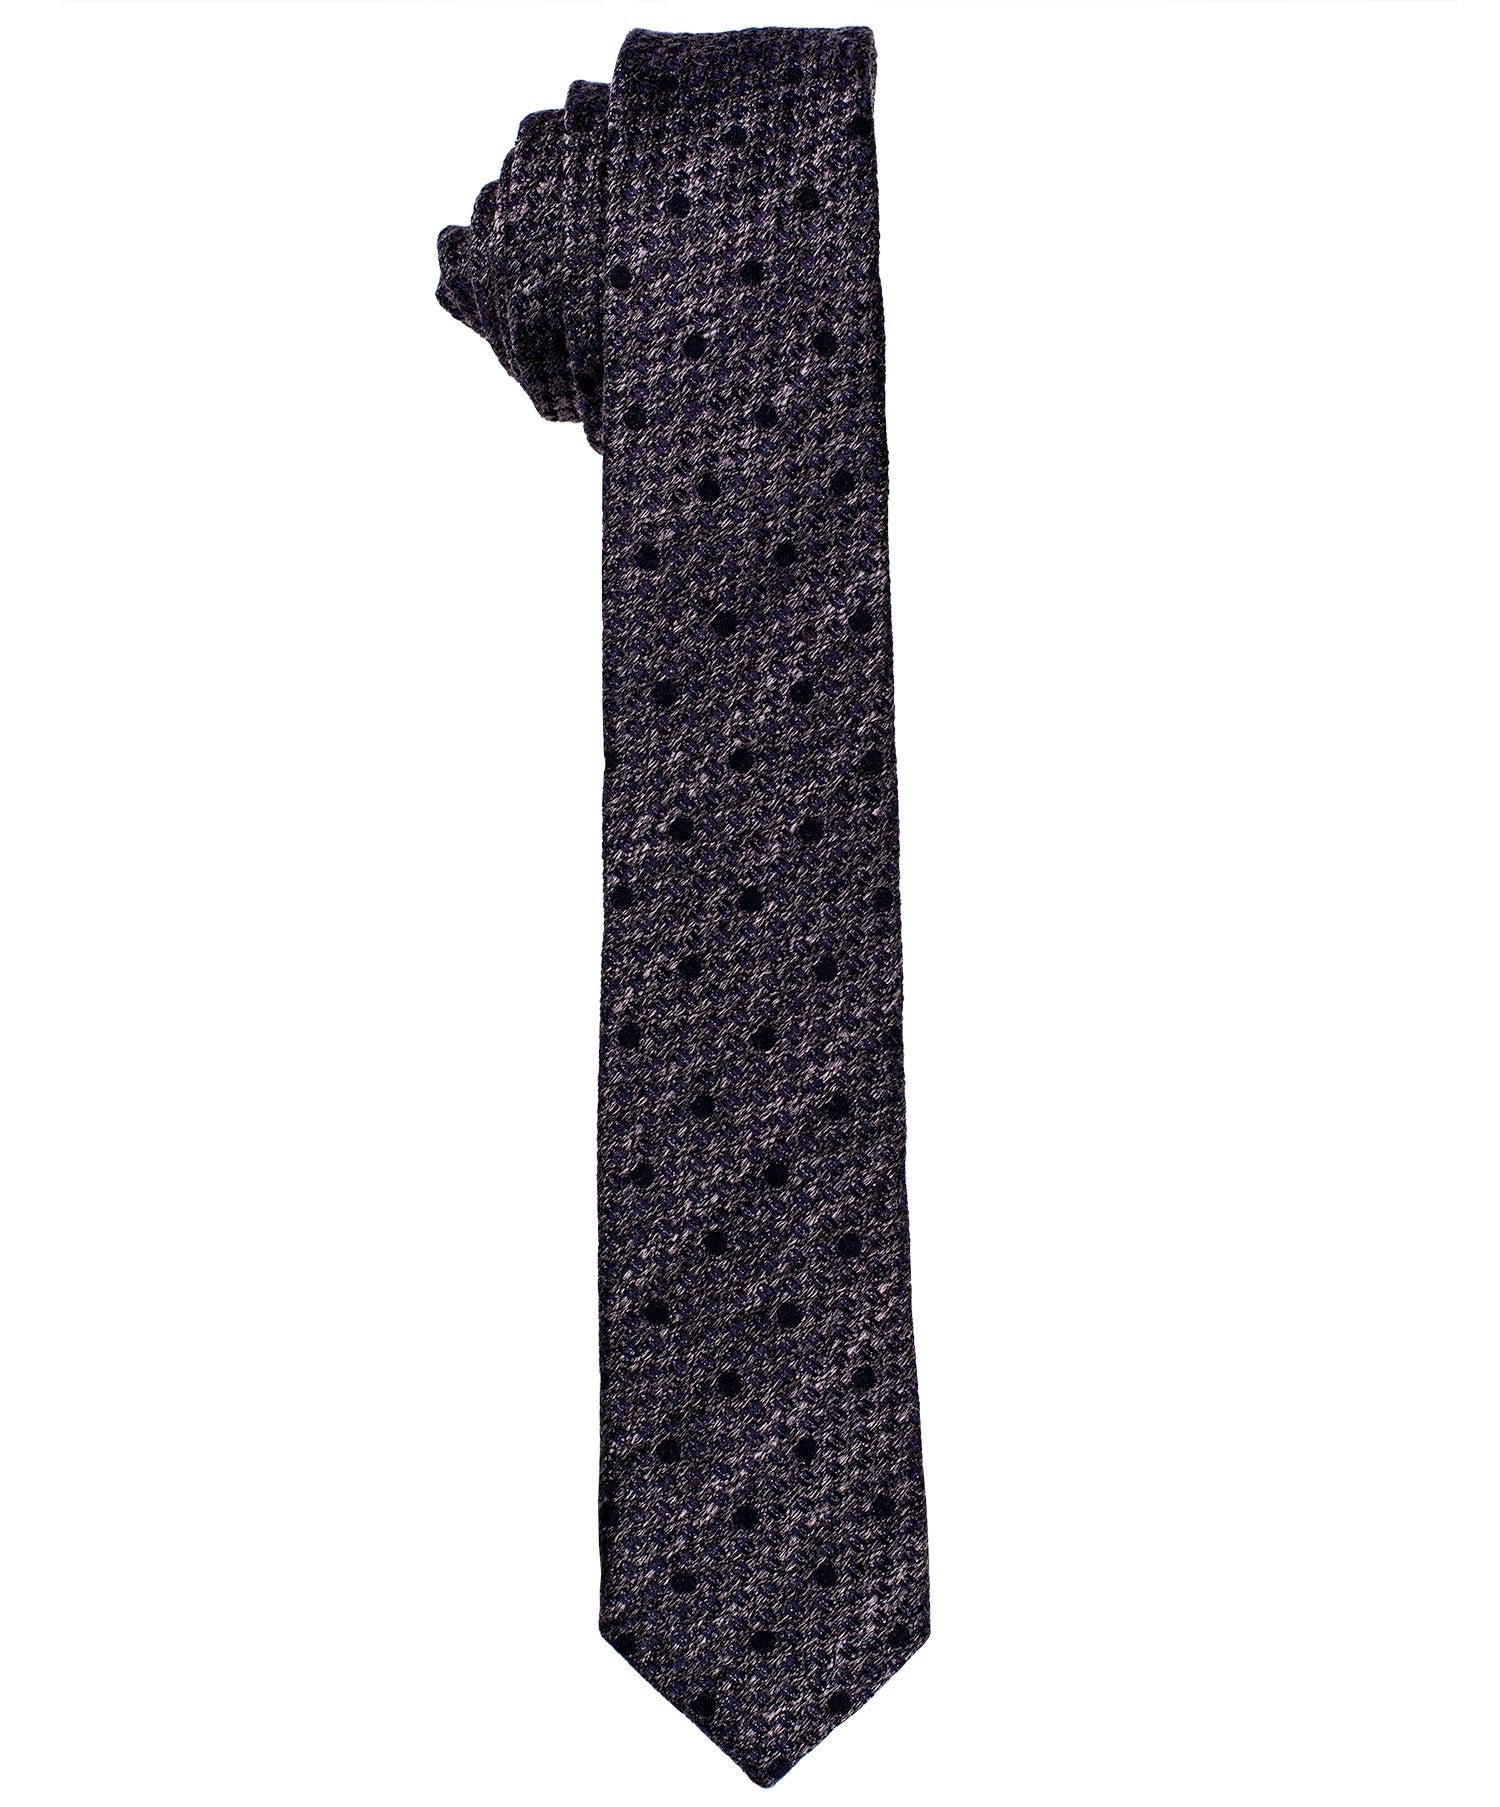 6.0cm Black/Grey Small Dot on Melange Ground  Tie